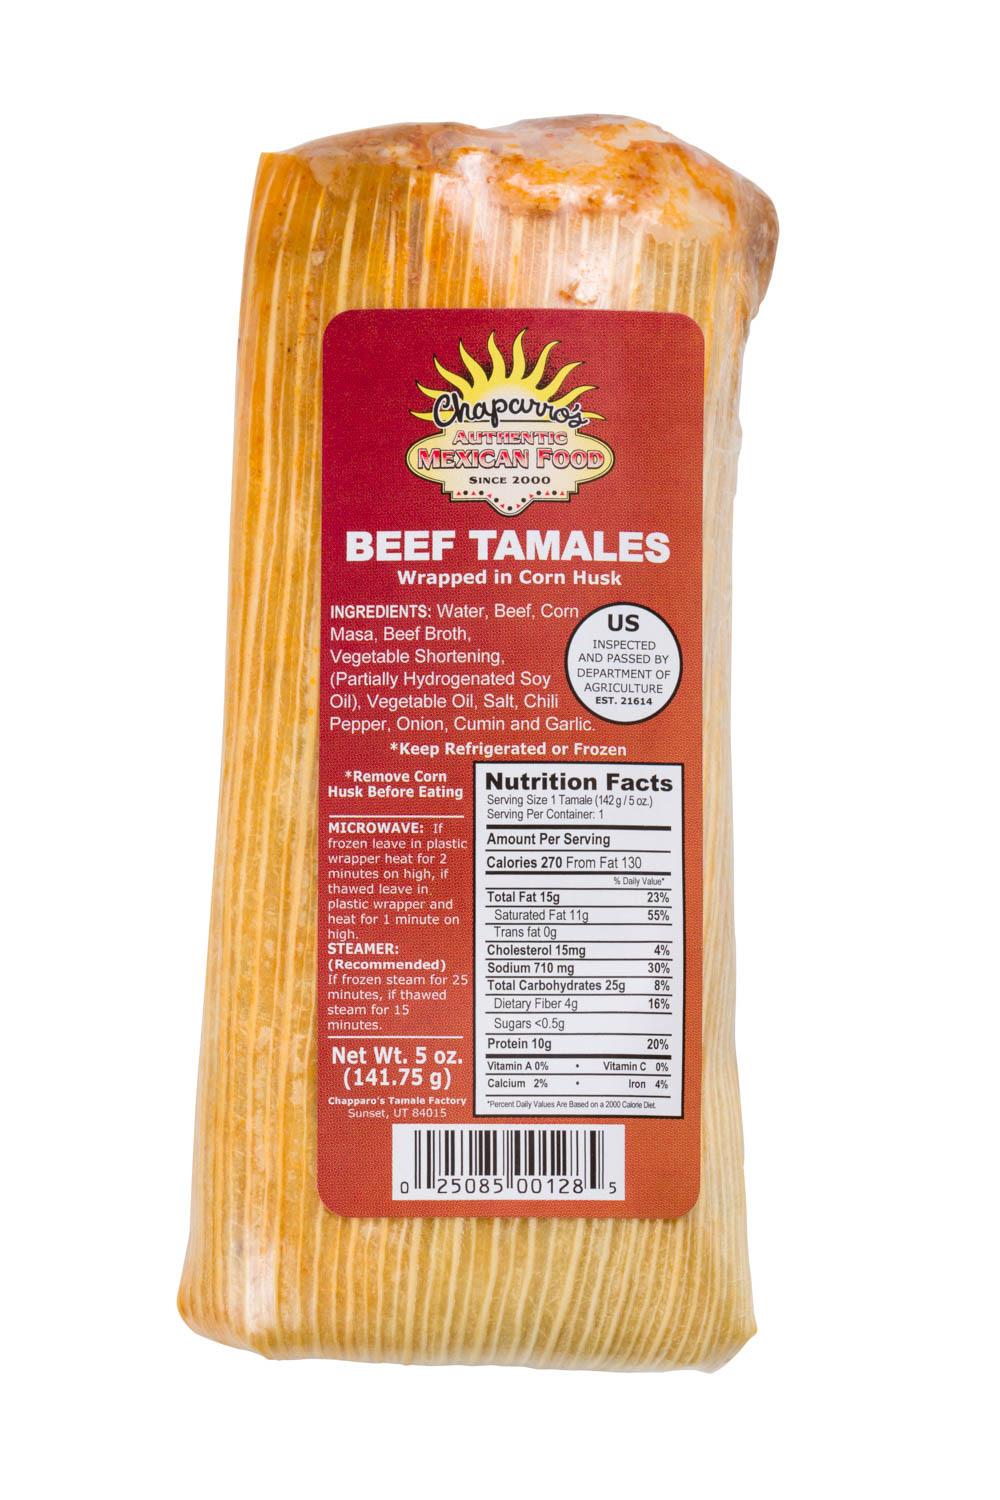 Beef tamales